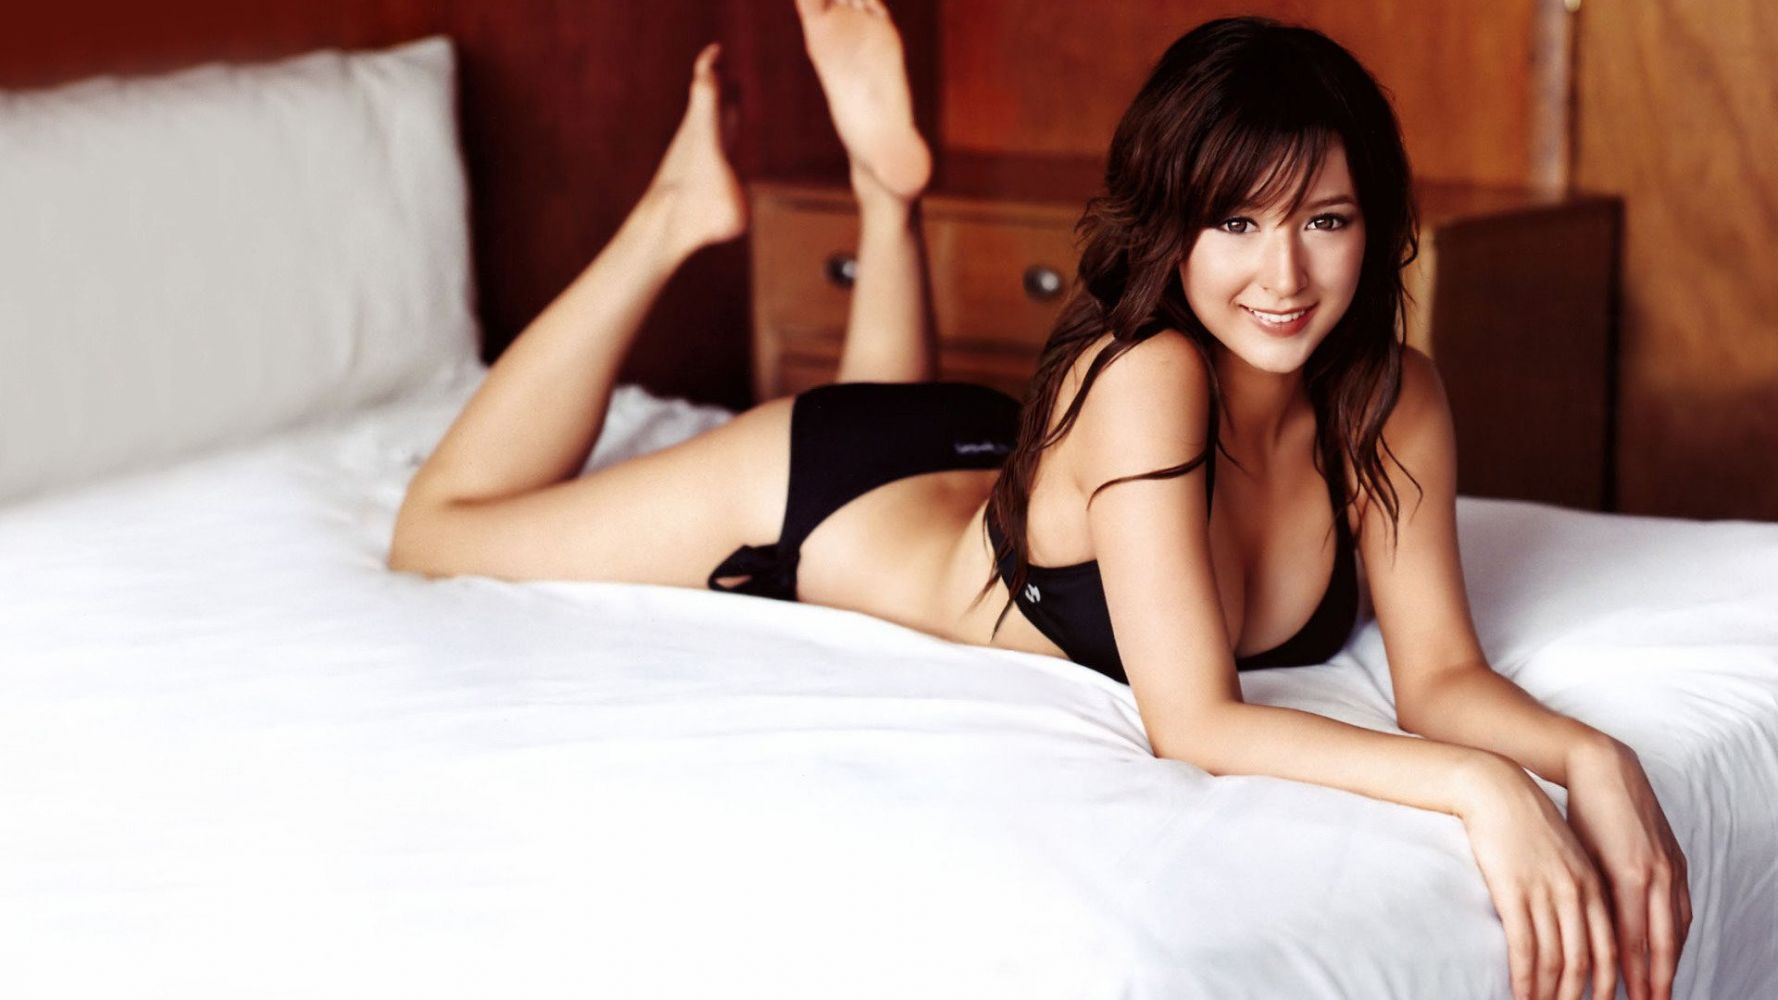 Japanese beautiful, famous sexy actresses